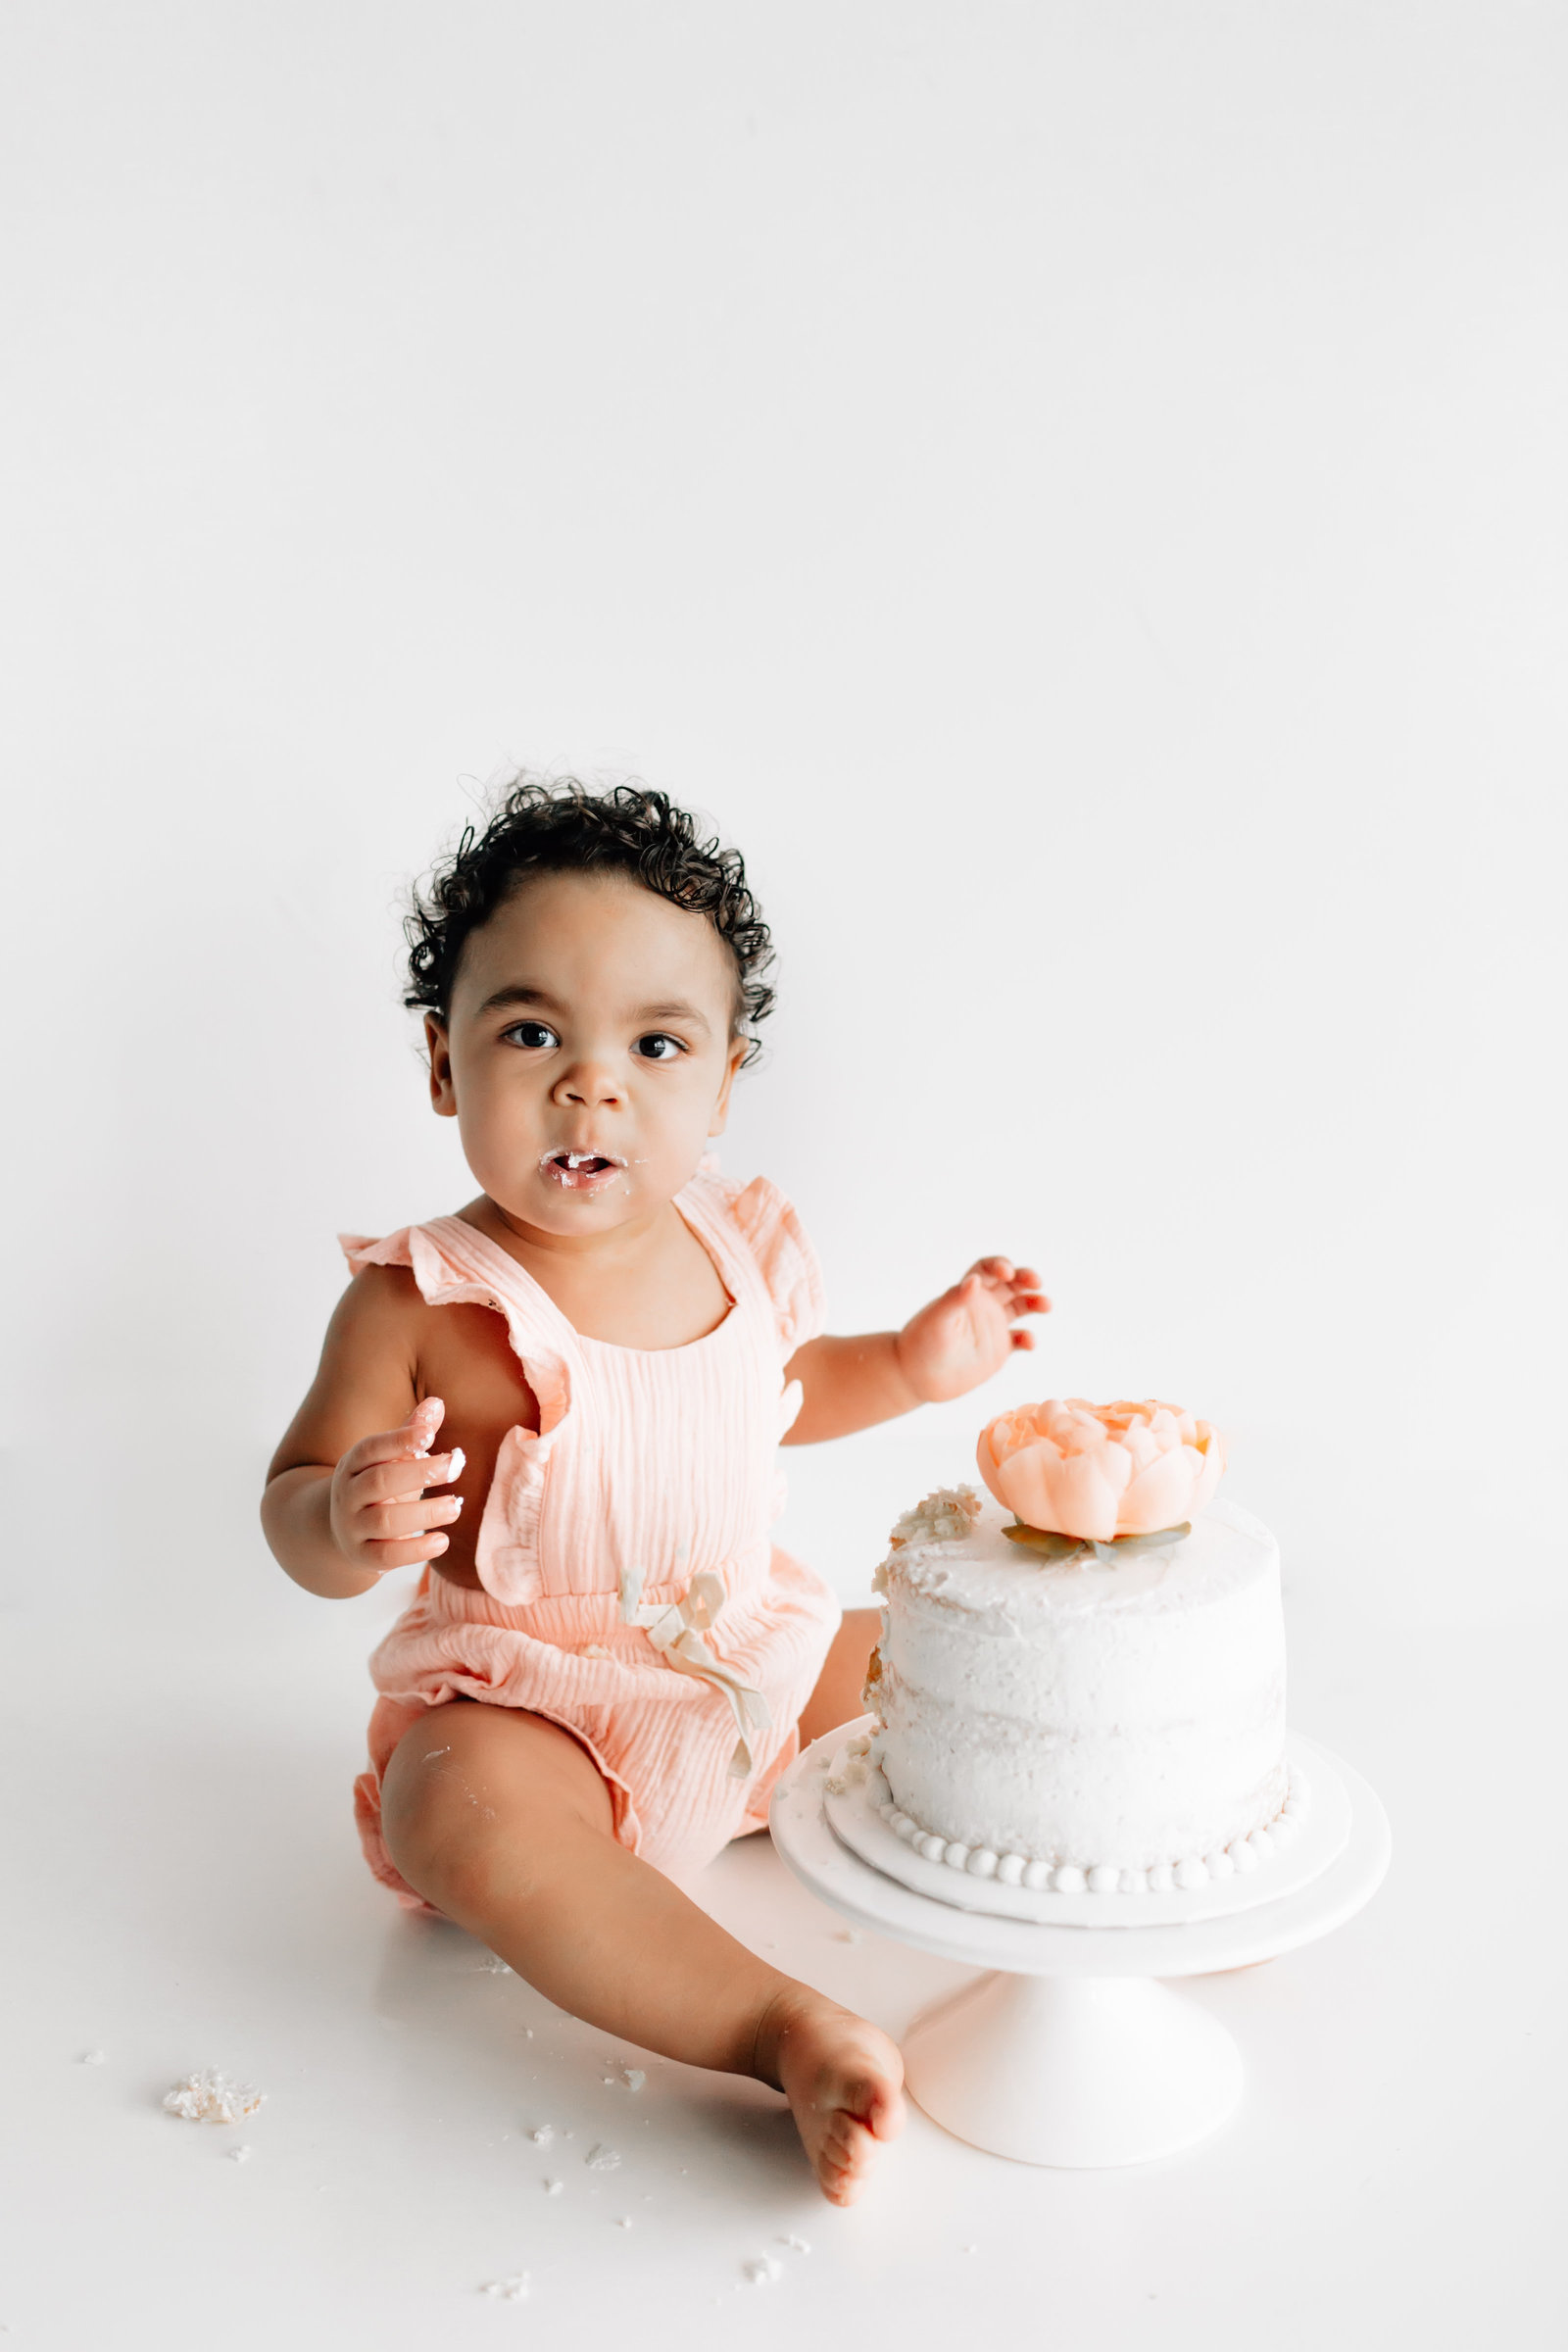 First birthday cake smash session in studio, milestone session, baby in pink outfit, white cake, white studio